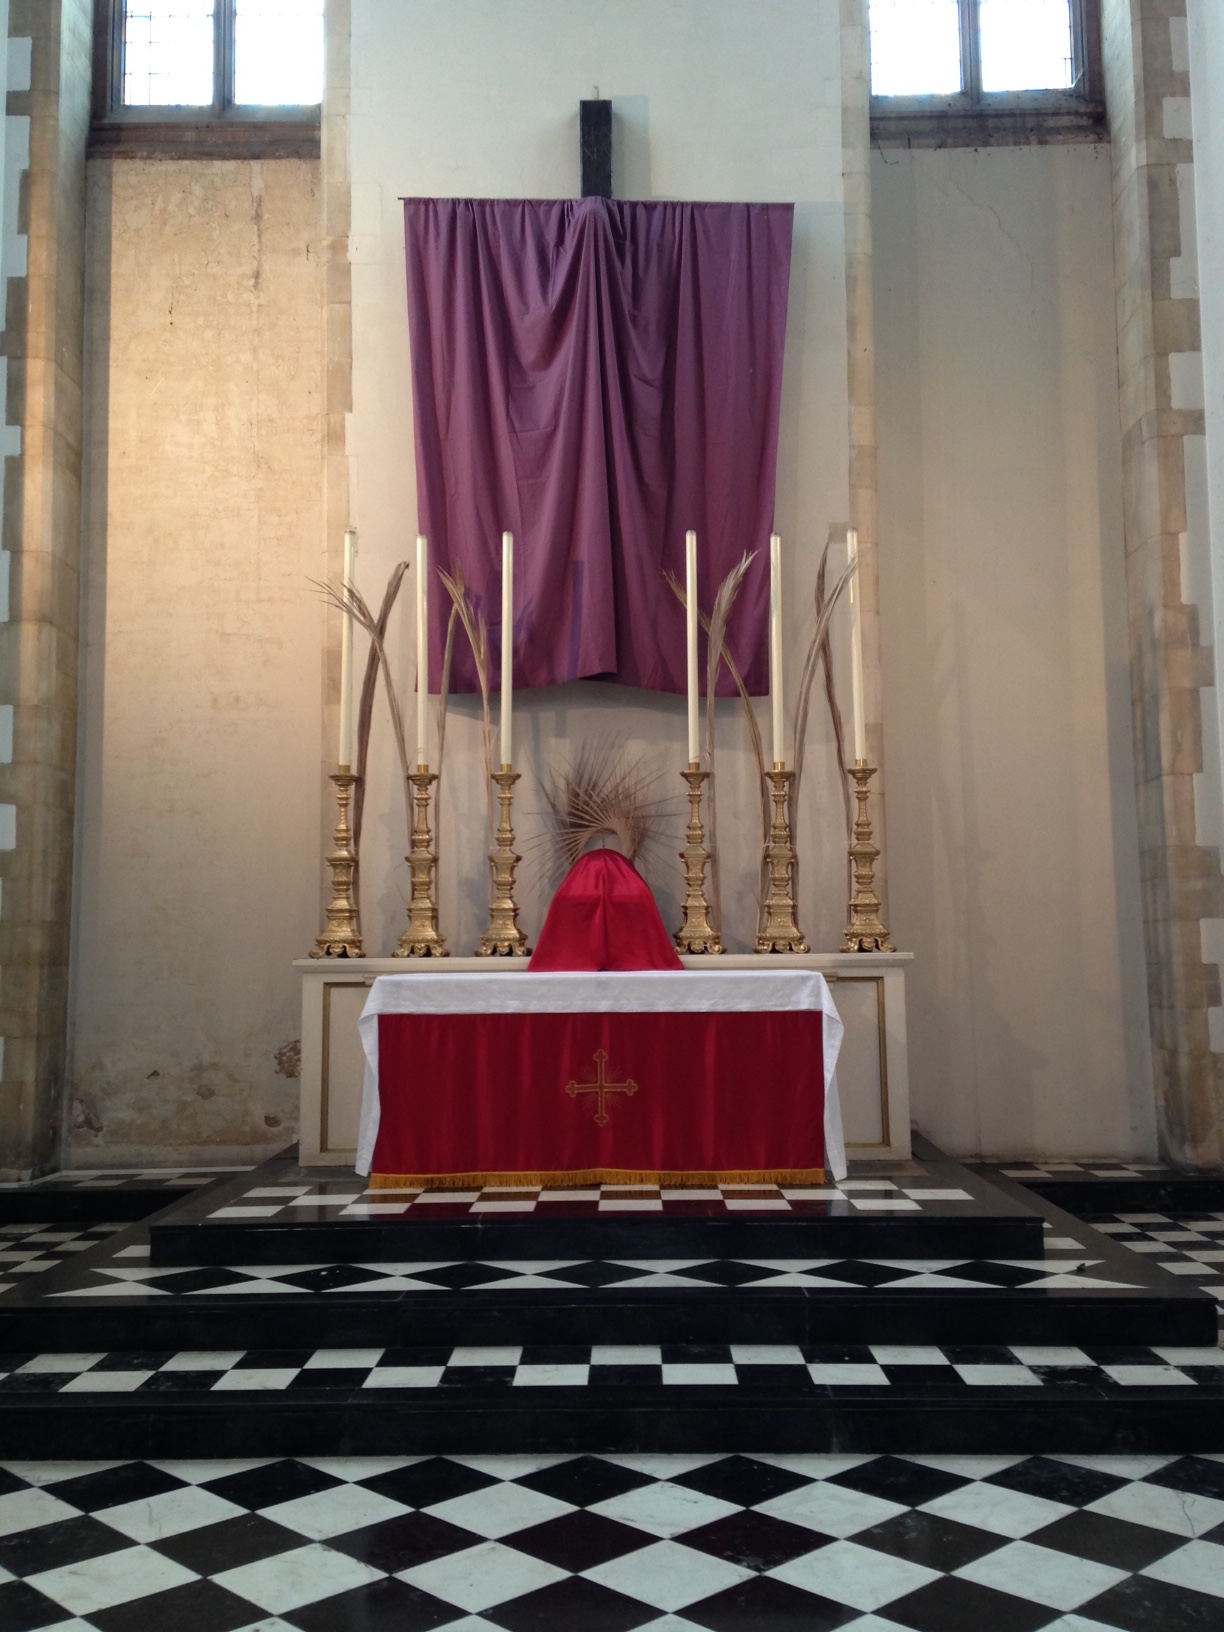 Our new red altar frontal, with the sanctuary ready for Palm Sunday